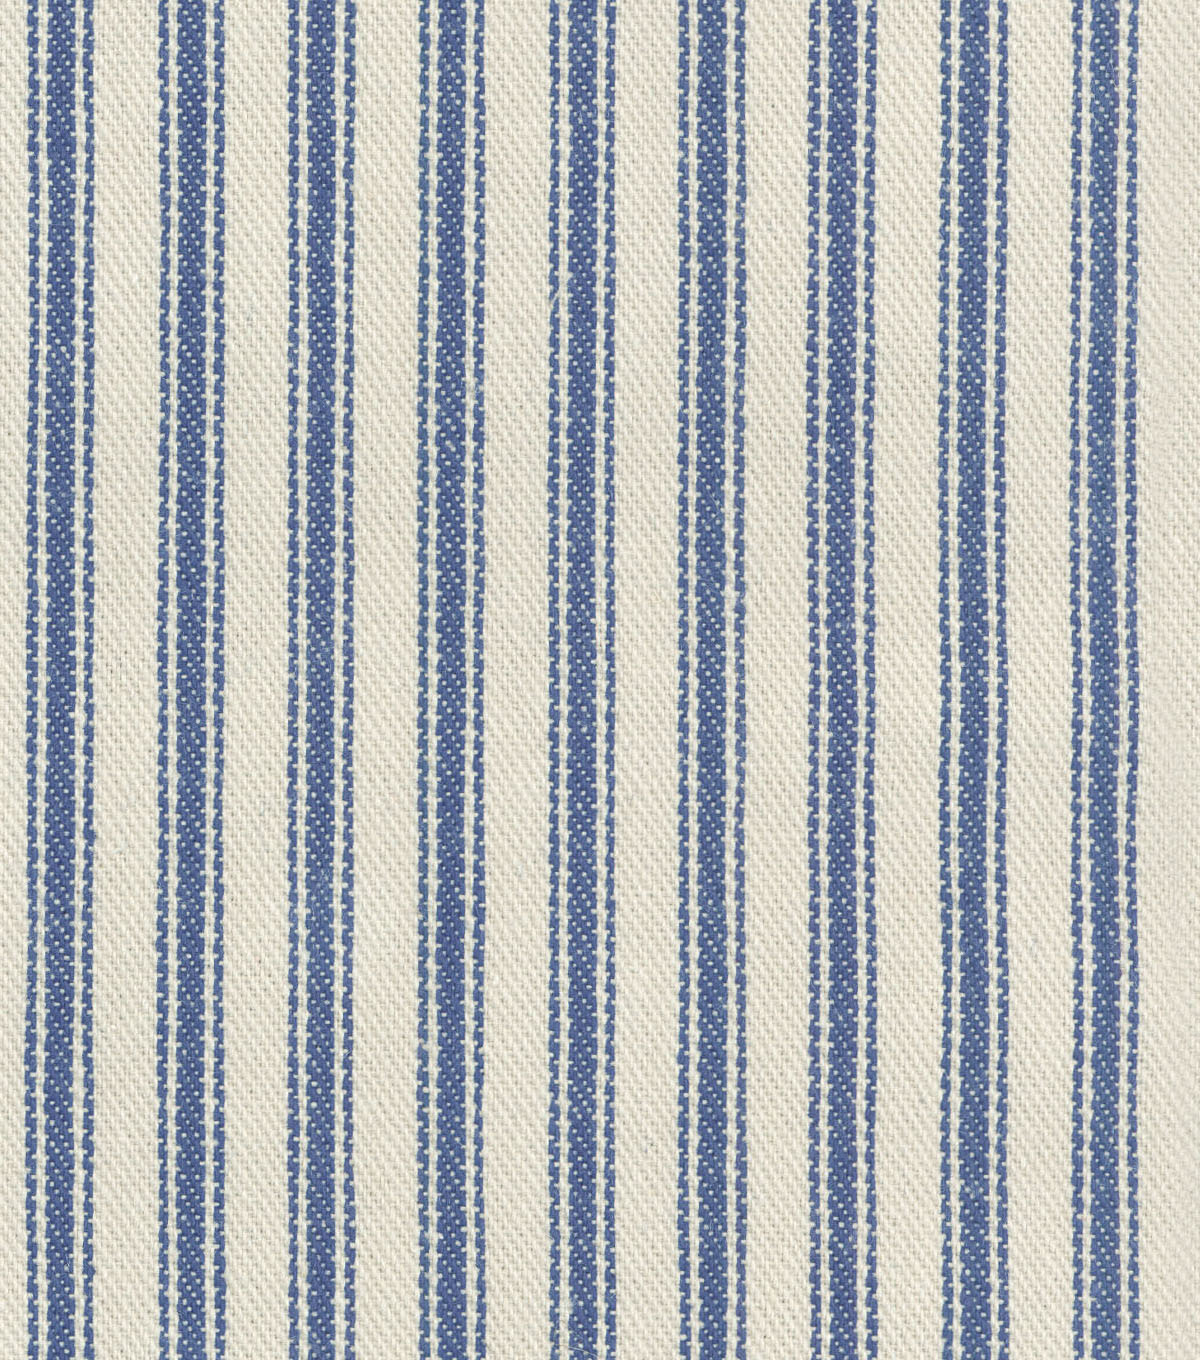 Waverly Multi-Purpose Decor Fabric 55\u0022-Classic Ticking Vintage Ink